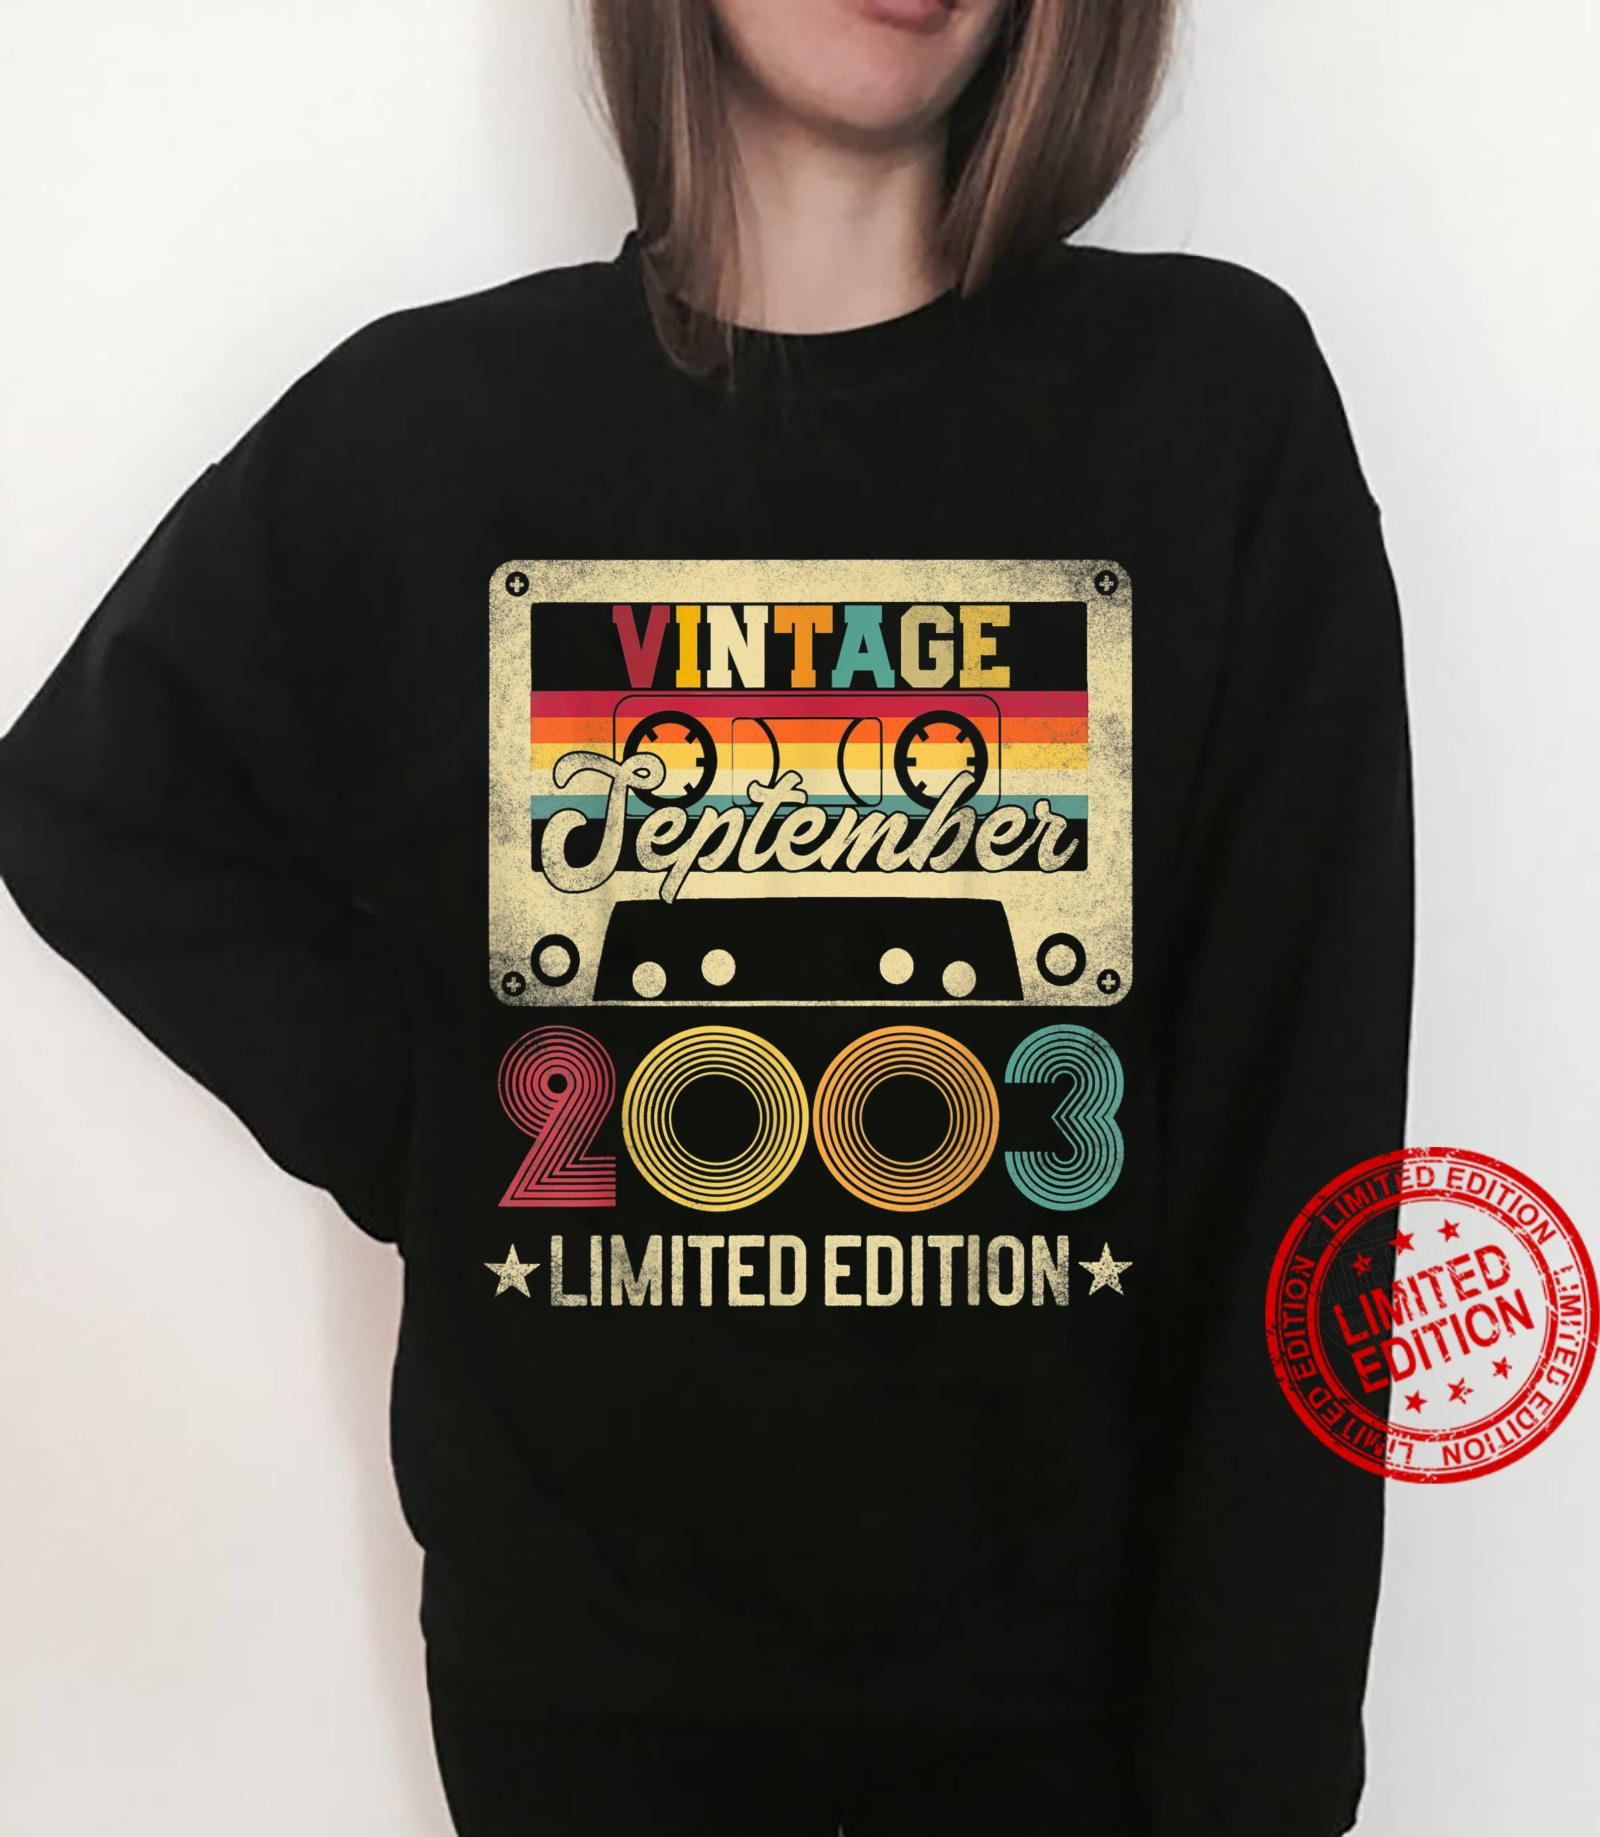 2003 18th September Birthday Limited Edition Vintage Shirt sweater